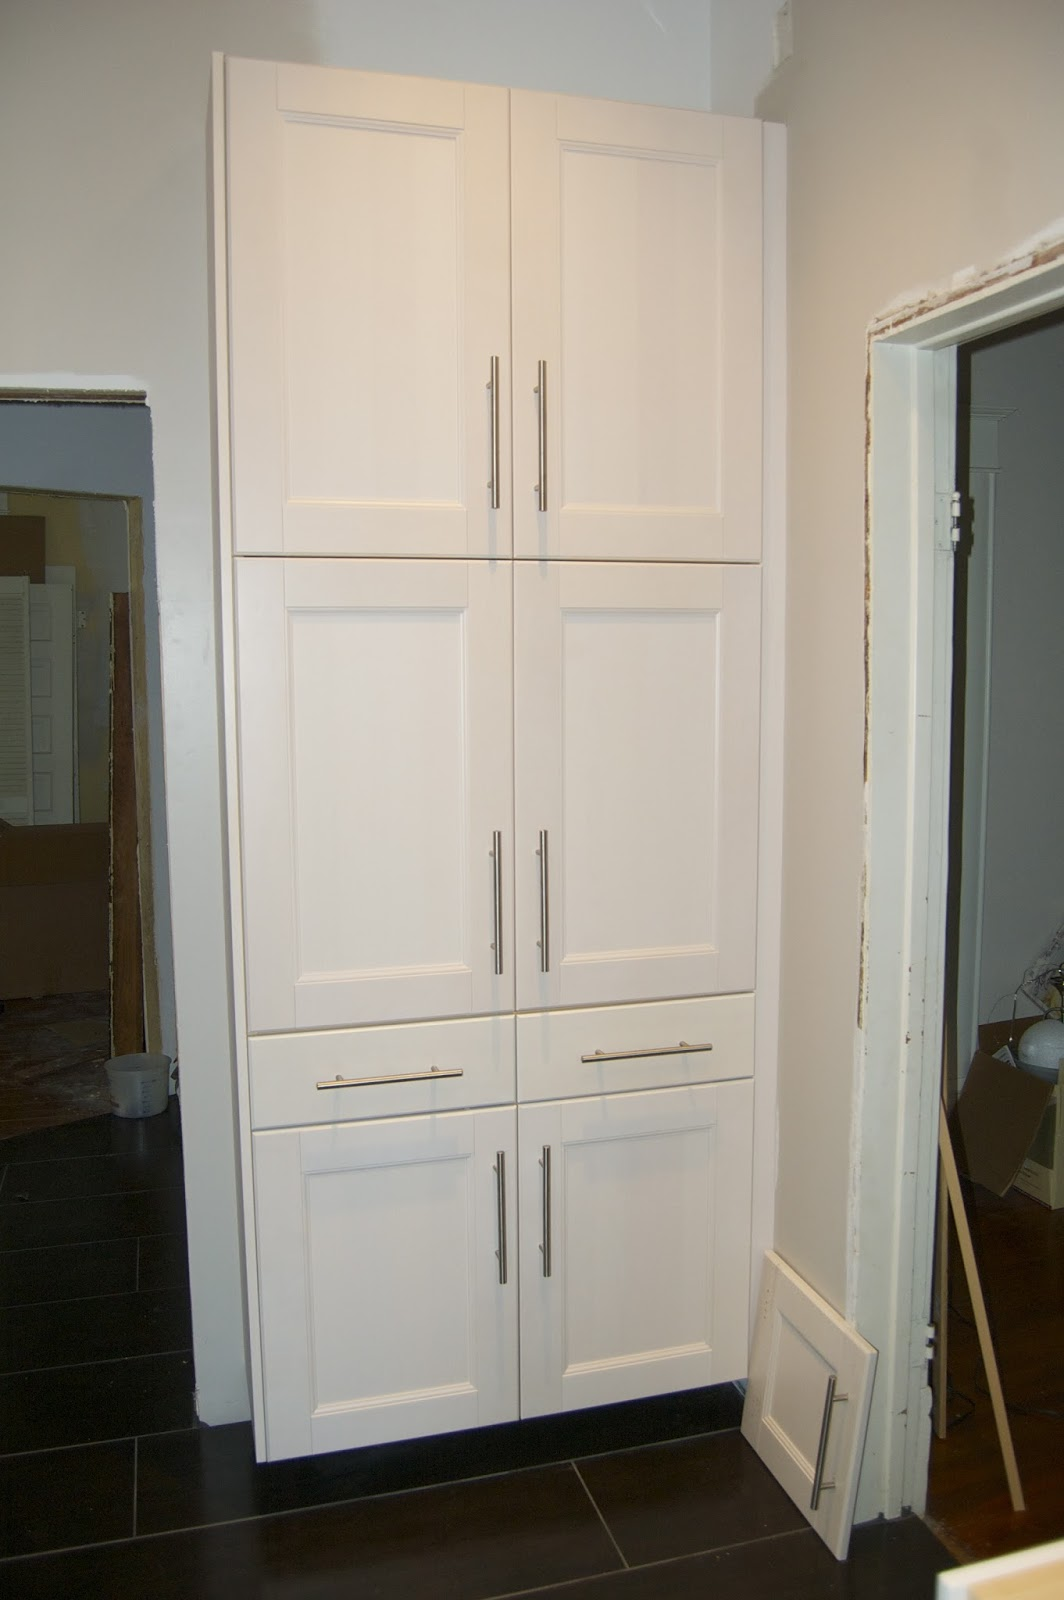 12 deep pantry cabinet my journey from kitchen to kitchen reality progress 10021